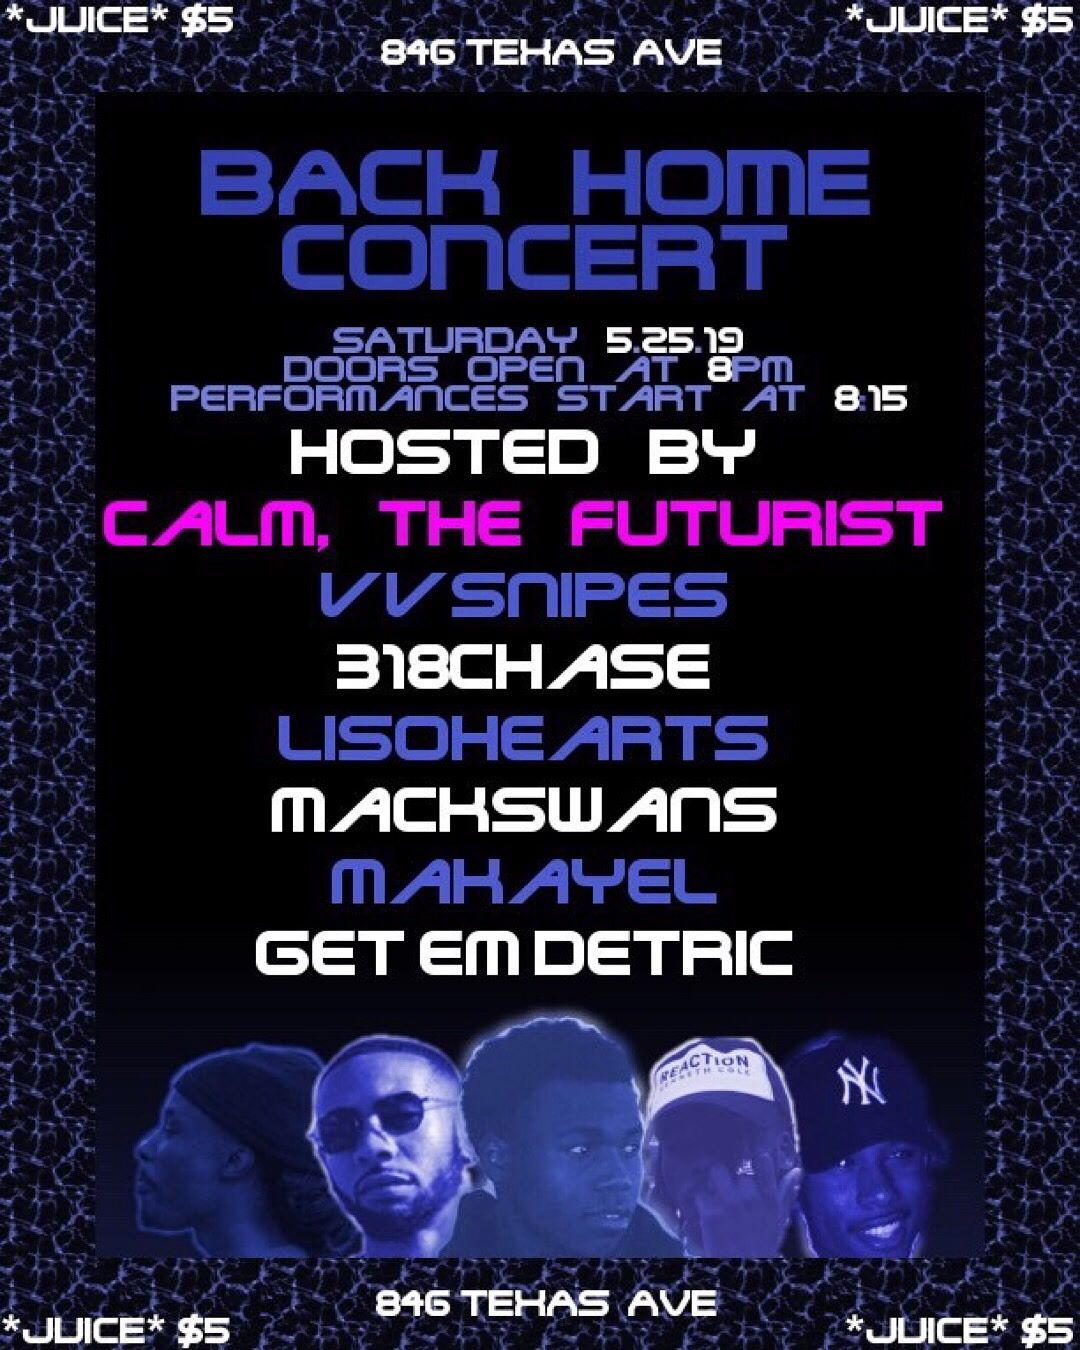 Back Home Concert flyer